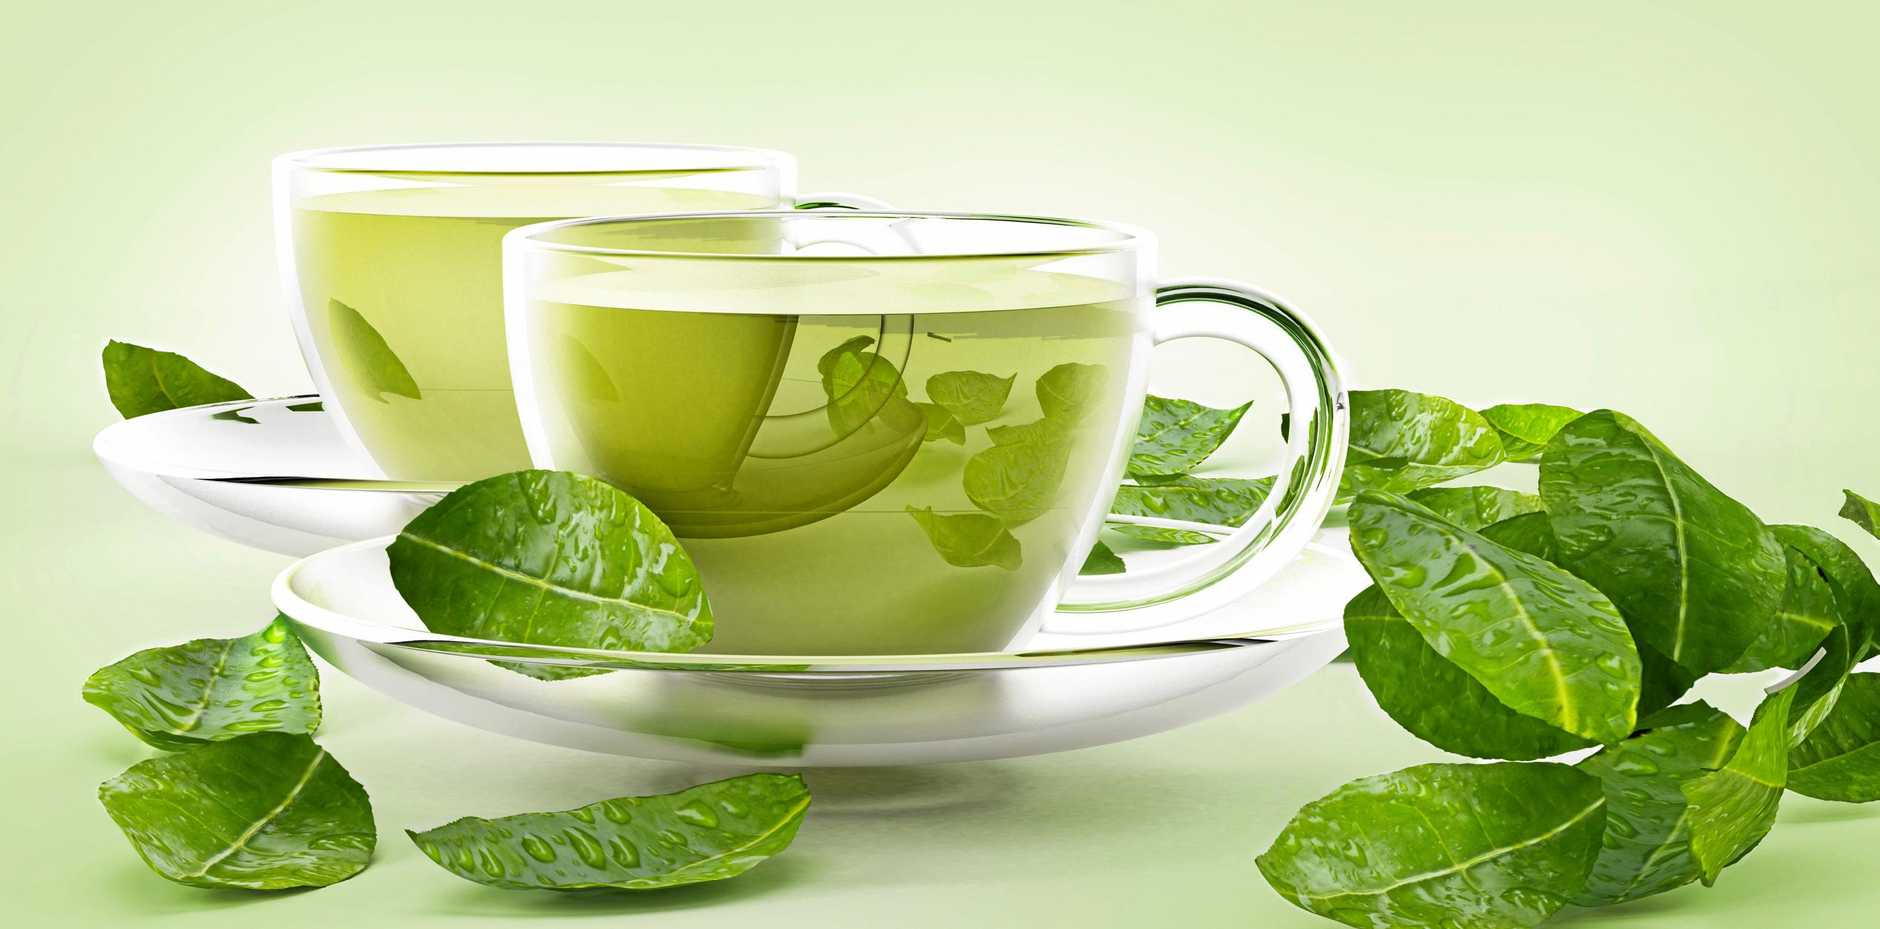 Research shows mint tea helps activate the brain, prevents fatigue and memory loss.